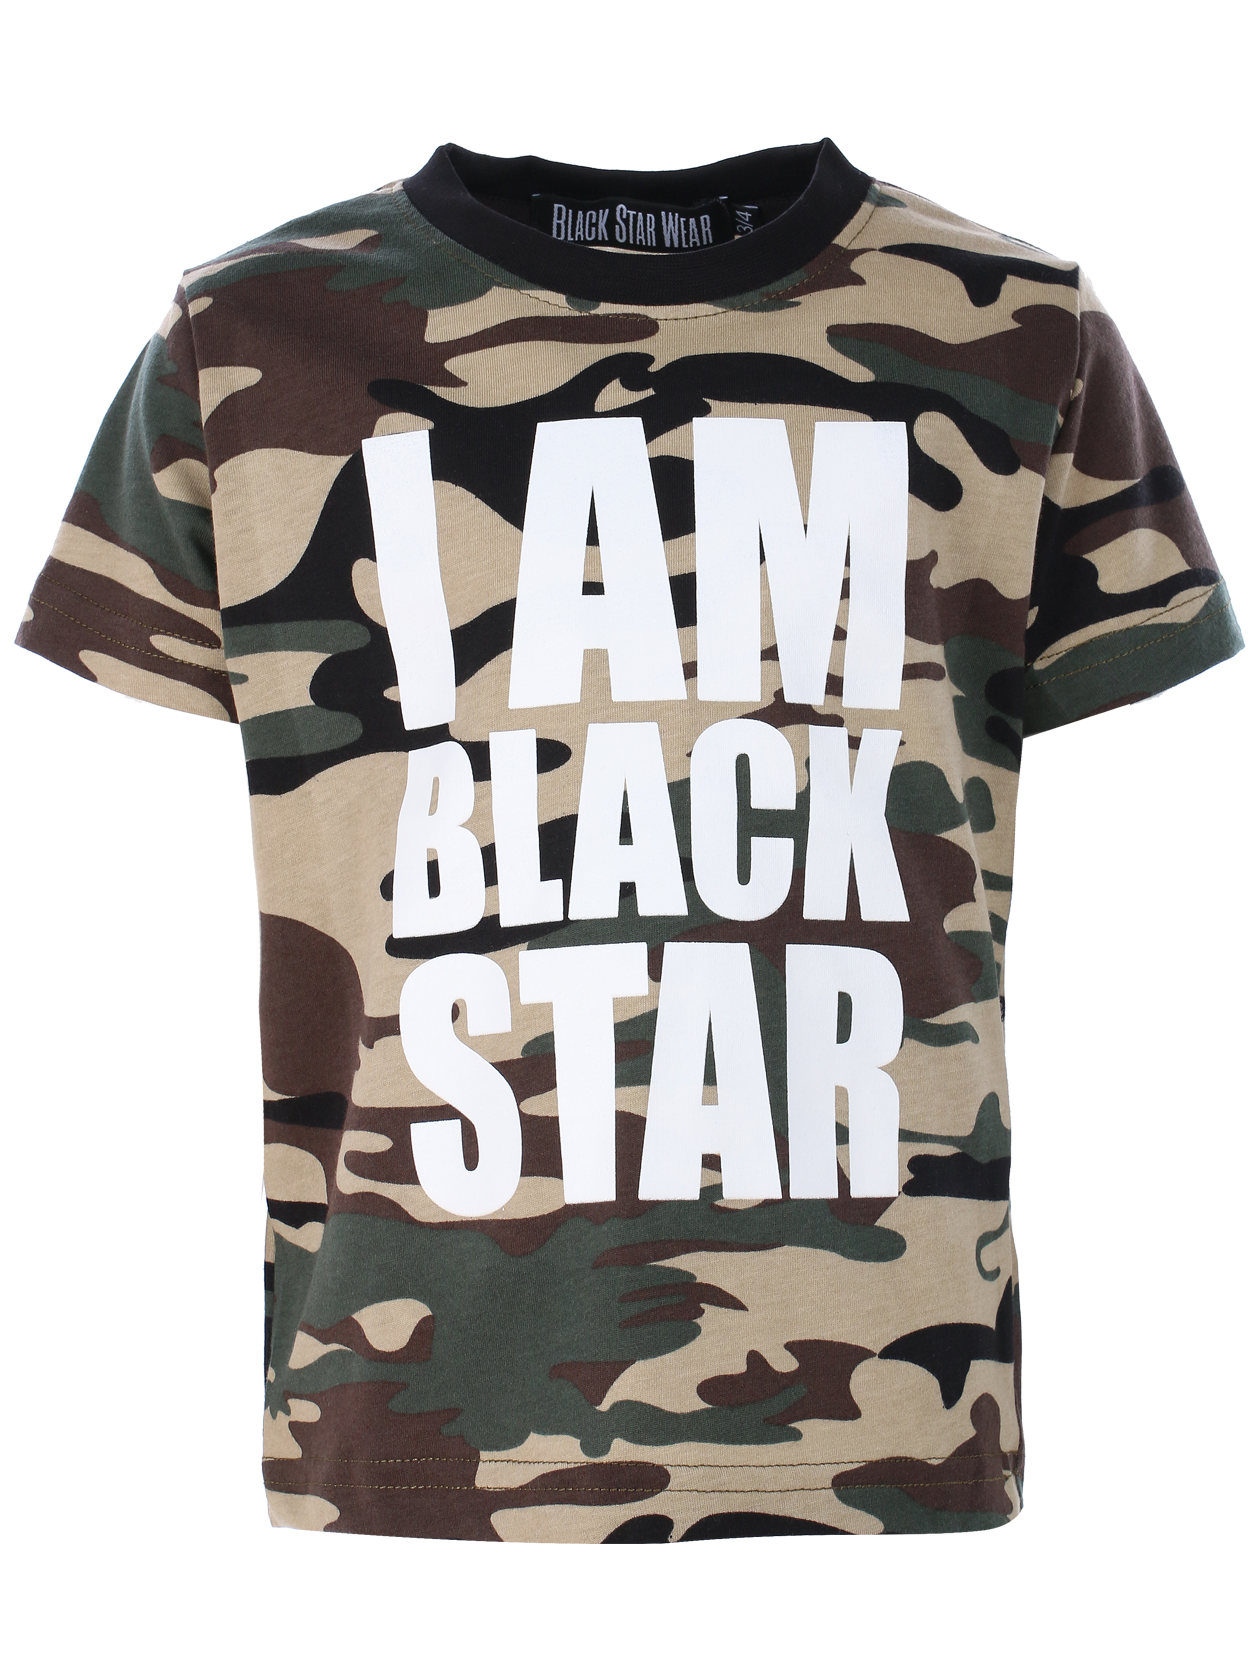 Kids t-shirt I AM BLACK STAR CAMOKids t-shirt by Black Star Wear. Straight fit, classic cut, o-neck, 100% natural cotton tissue. Big white print I am Black Star on the chest. Avaliable in camouflage. 1/2 years: sleeve  9cm, lenght 36cm. 3/4 years: sleeve 9,5cm, lenght 38cm. 5/6 years: sleeve 10cm, lenght 40cm.<br><br>size: 9-10 years<br>color: Camouflage<br>gender: unisex